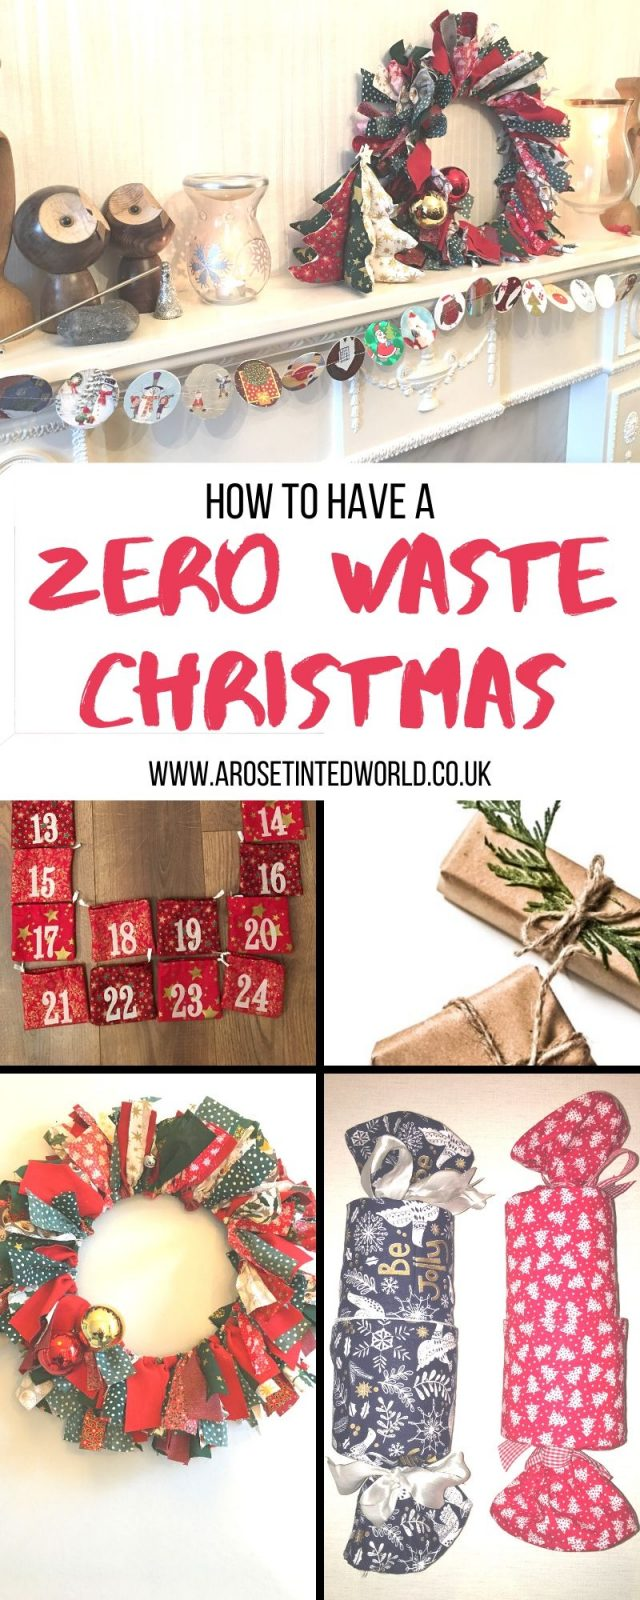 Zero Waste Christmas Tips - A Merry Lagom Christmas - here are some ideas hints tips and tricks on how to reuse, recycle and upcycle in order to have a more zero waste festive season . Holiday ideas on reducing waste and reduce plastic pollution this Xmas #lagom #christmas #zerowaste #christmascrafts #frugalchristmas #christmasdiy#christmasdecor #zerowastechristmas #sustainablechristmas #sustainability